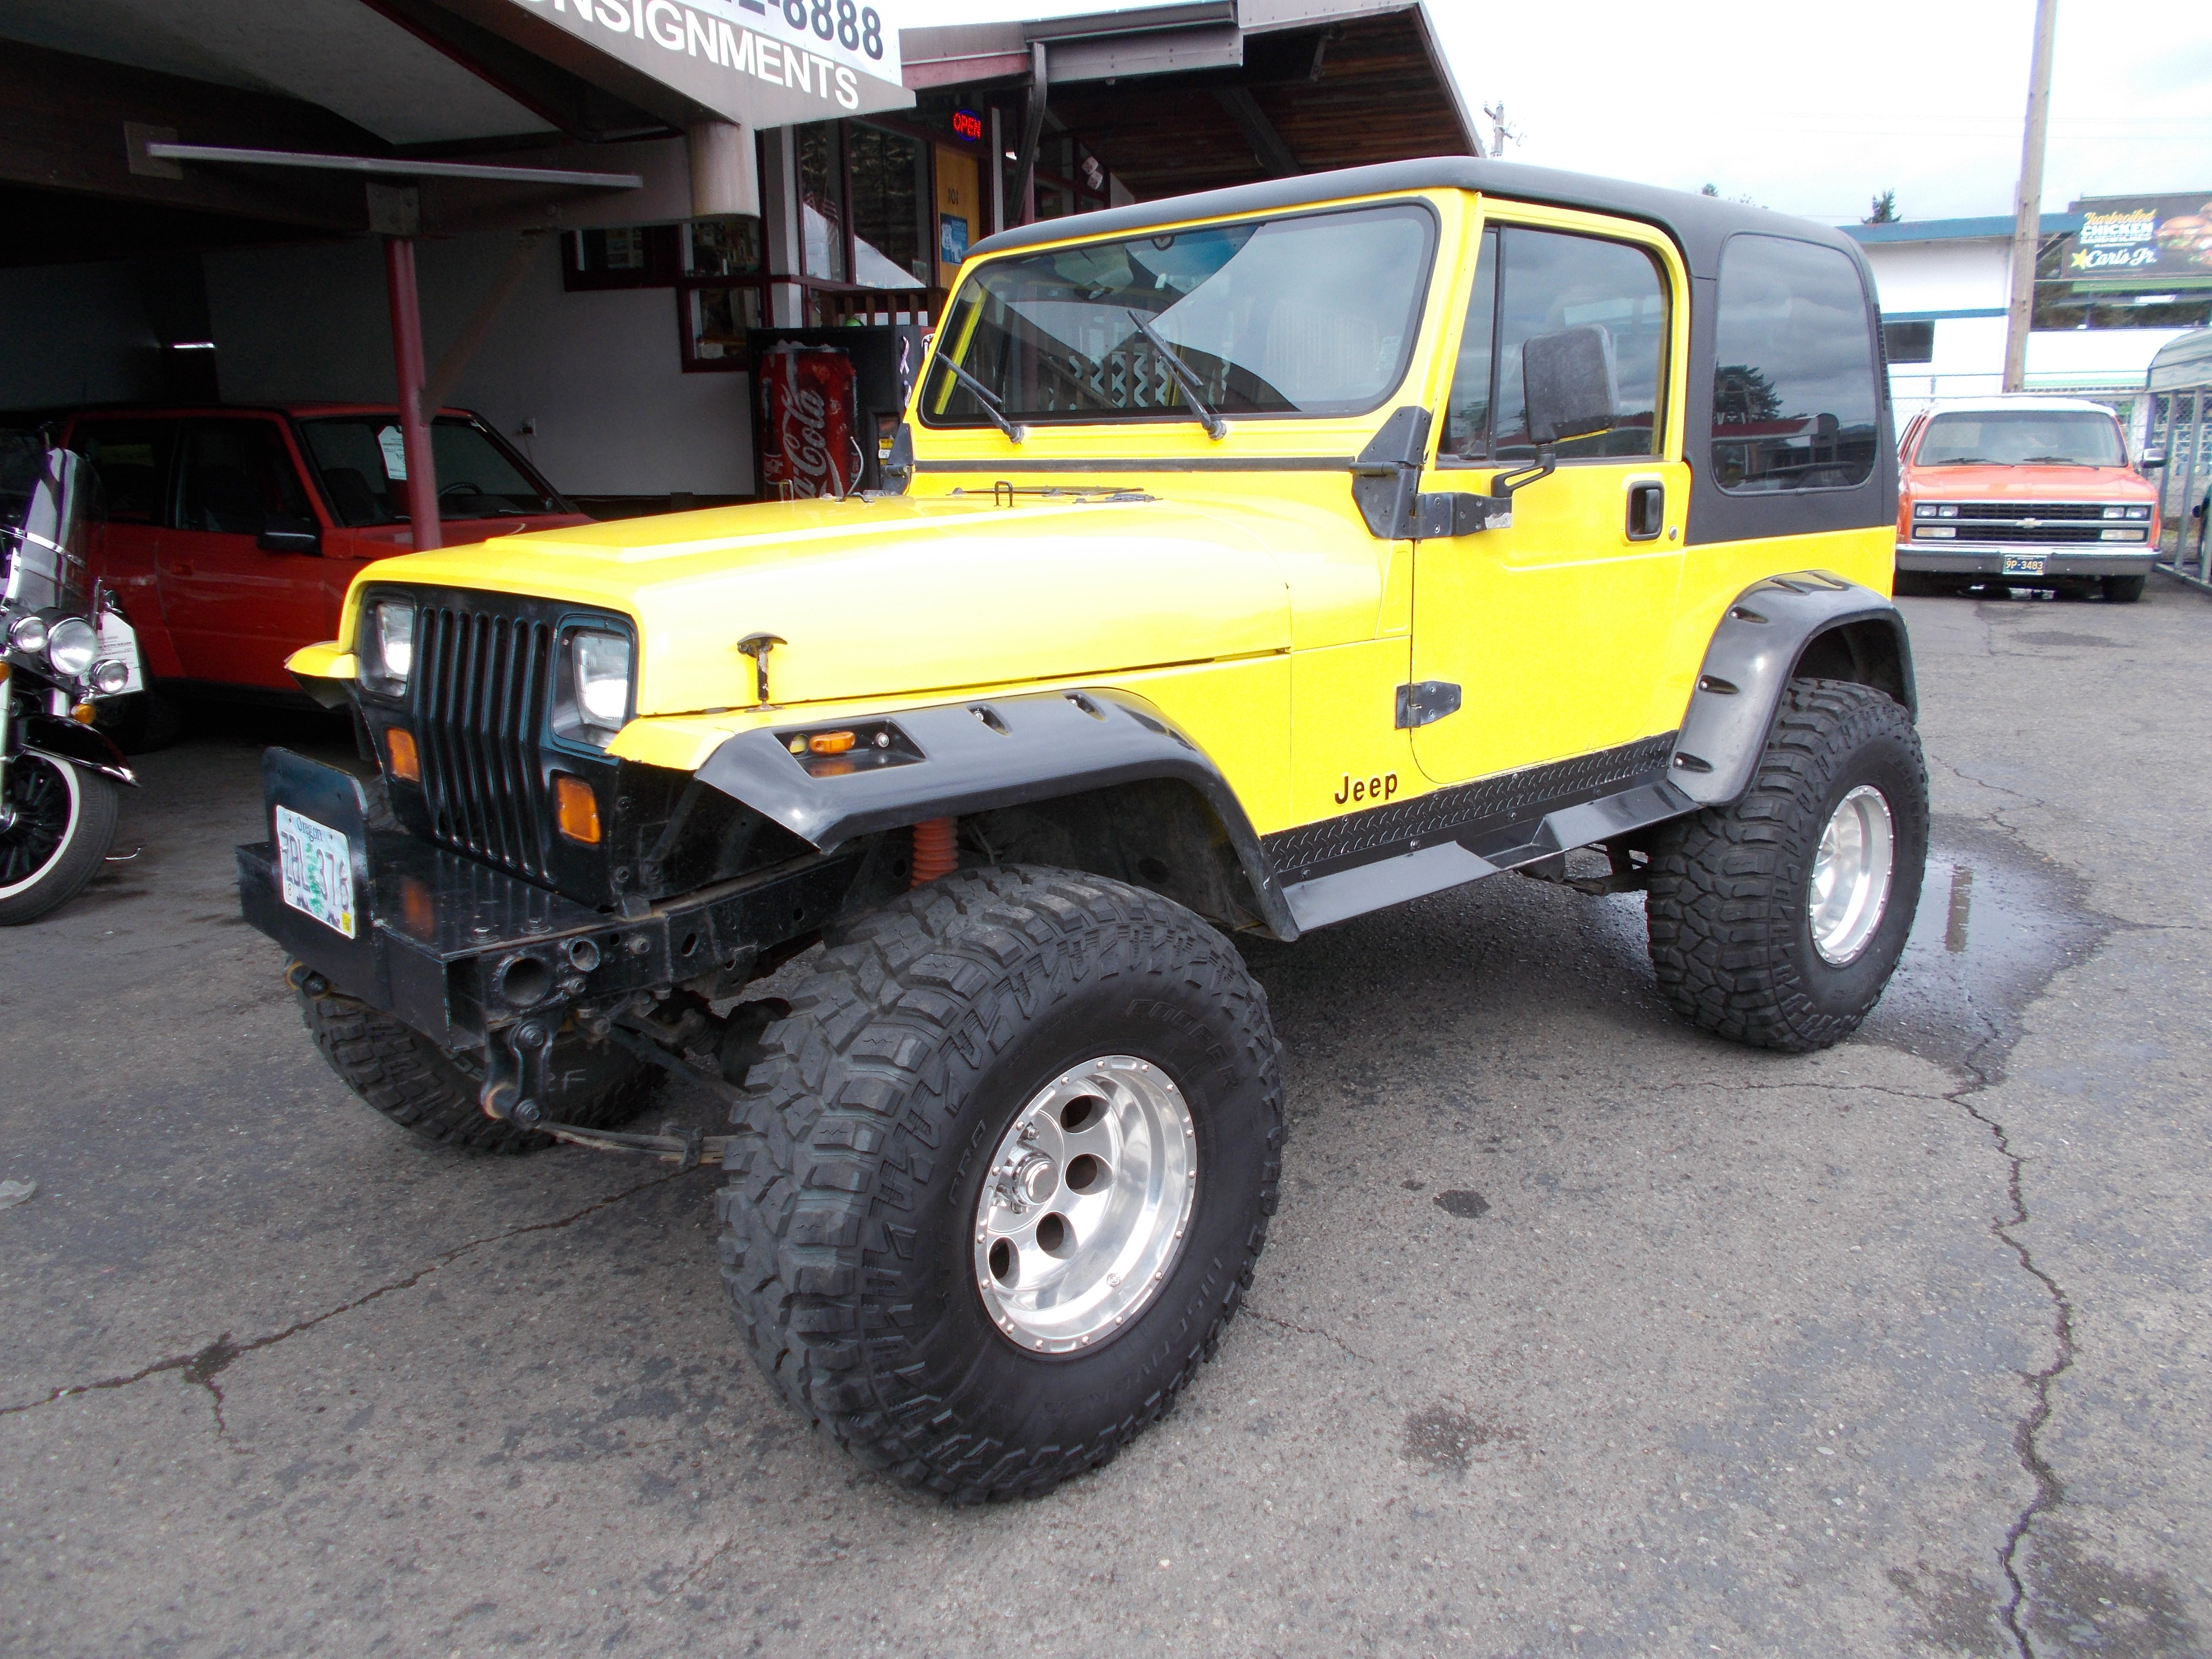 Hamilton Jeep Wrangler Flat Bed 1994 Hard Top 4cyl 5spd I Have Receipts On Recent Motor Work For 1500 Brand New 35x1250 Cooper Discover Sst Tires